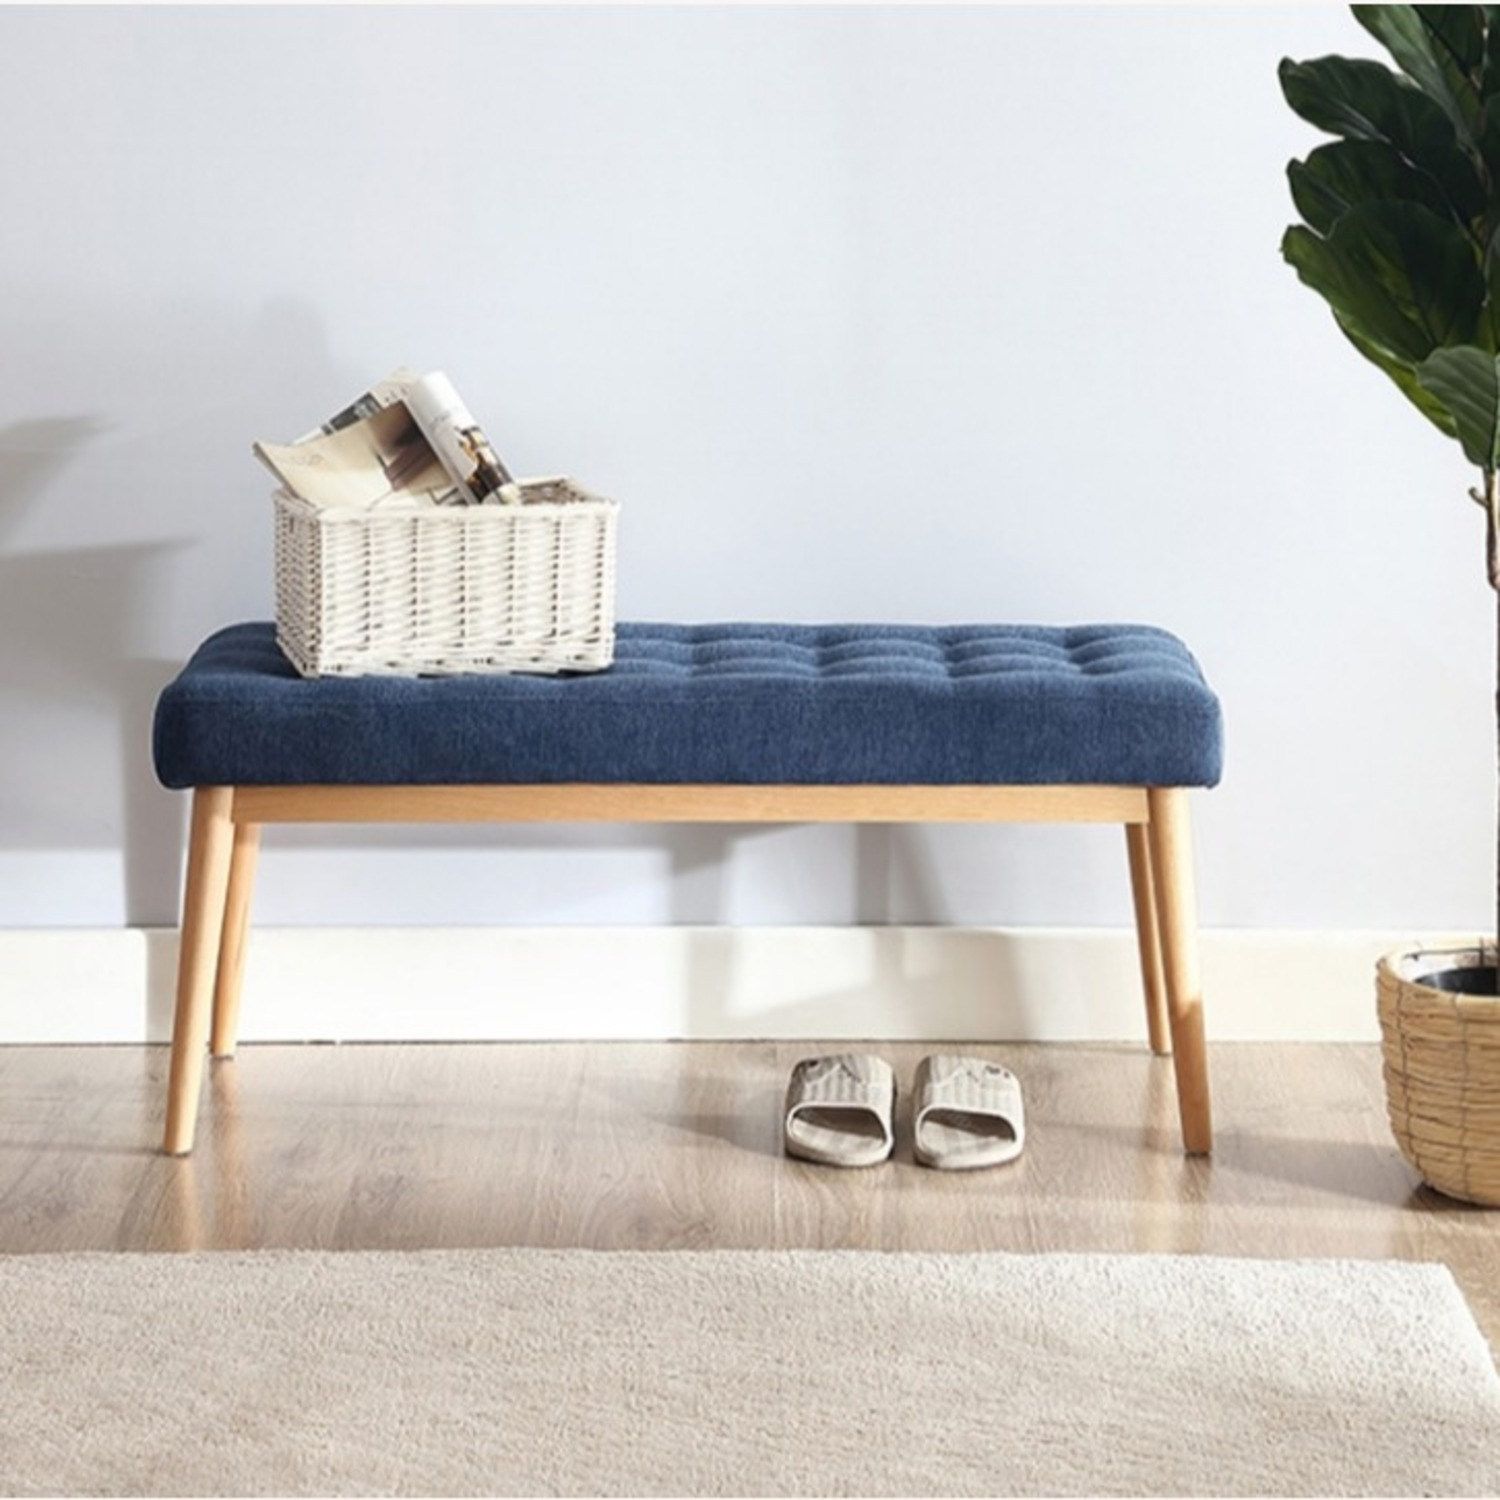 Bench In Blue Cotton Crafted W/ Beech Wood Base - image-5